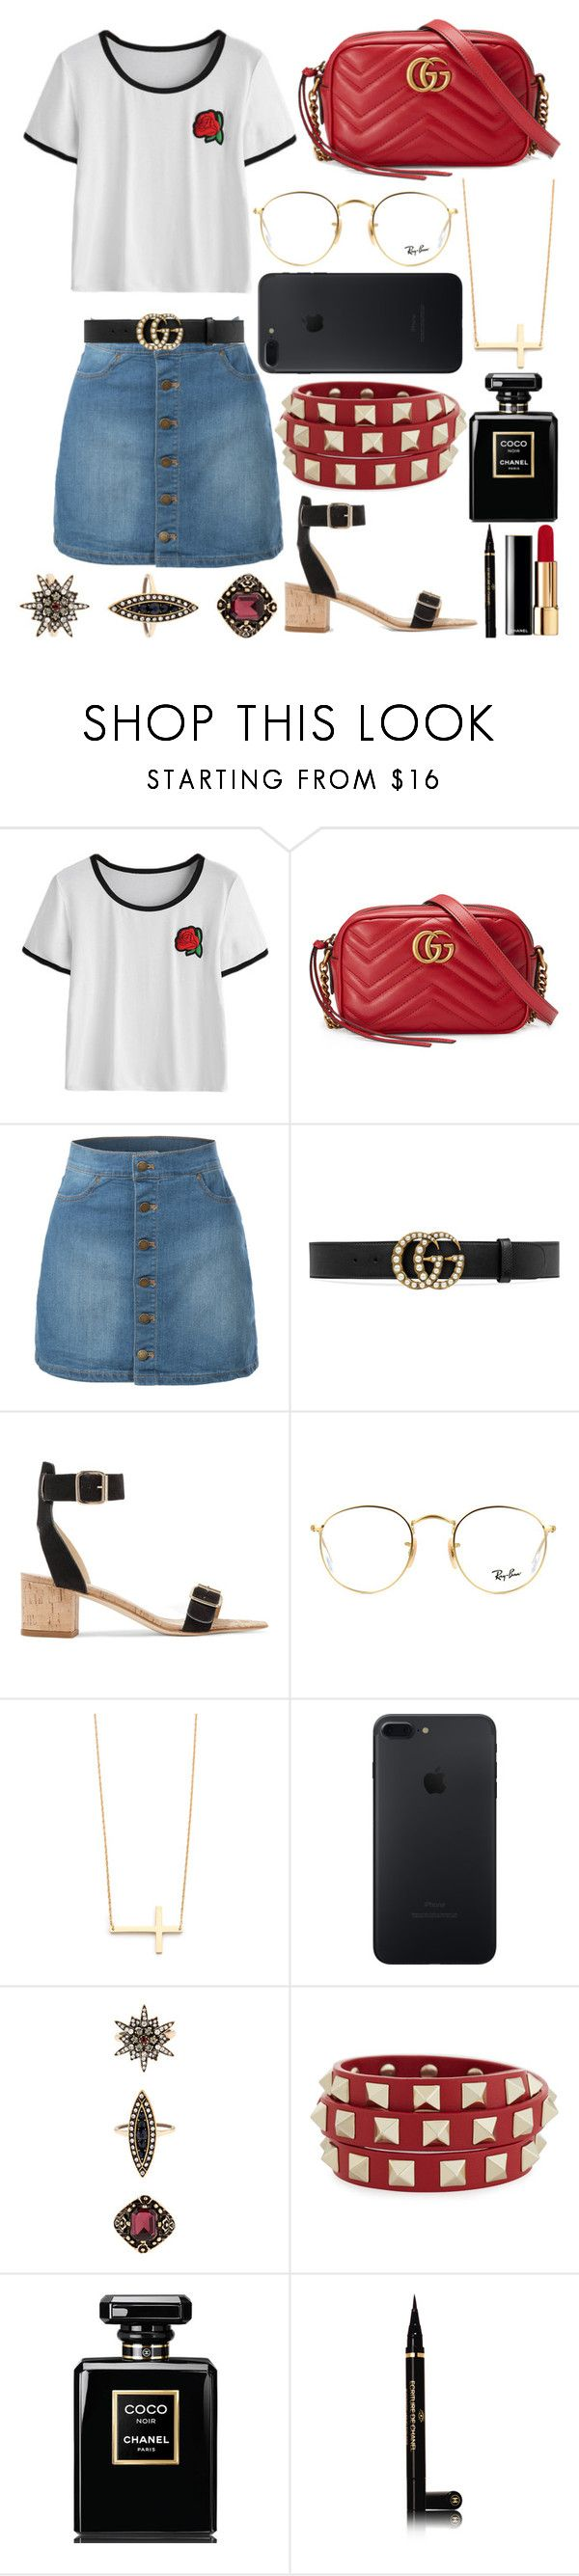 """""""425."""" by plaraa on Polyvore featuring Gucci, LE3NO, All Tomorrow's Parties, Ray-Ban, Jennifer Zeuner, Accessorize, Valentino and Chanel"""